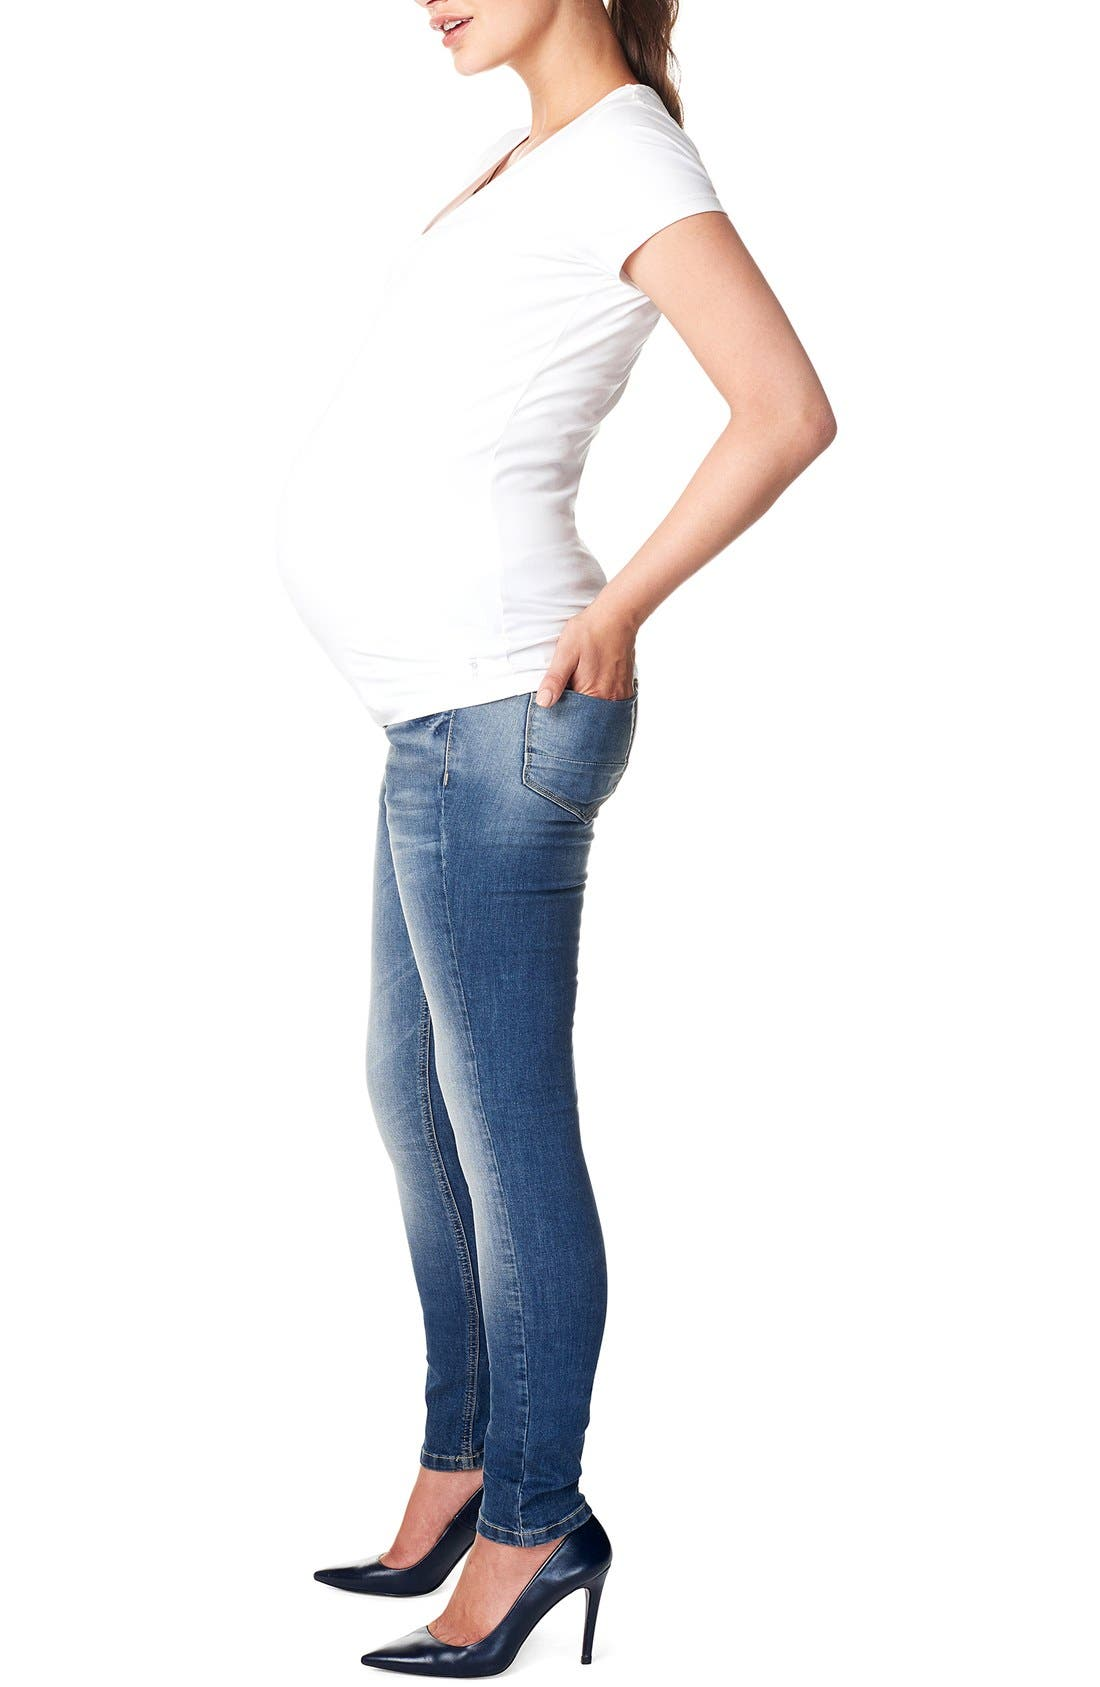 NOPPIES,                             'Tara' Over the Belly Skinny Maternity Jeans,                             Alternate thumbnail 3, color,                             STONE WASH